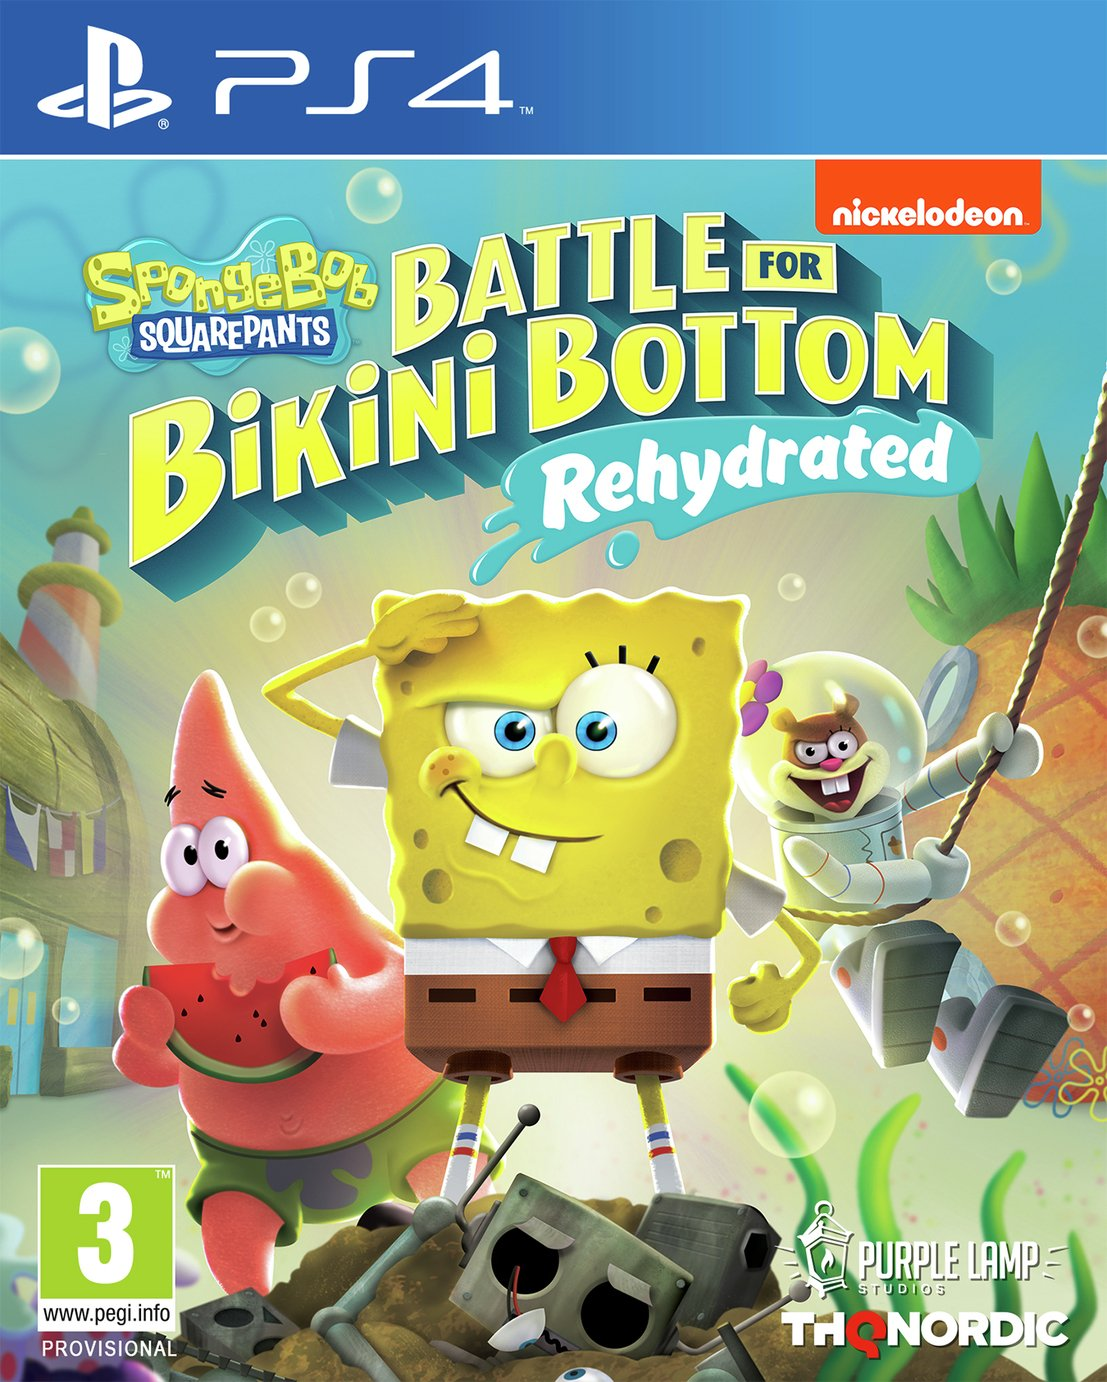 Spongebob Squarepants Battle of Bikini Bottom PS4 Pre-Order